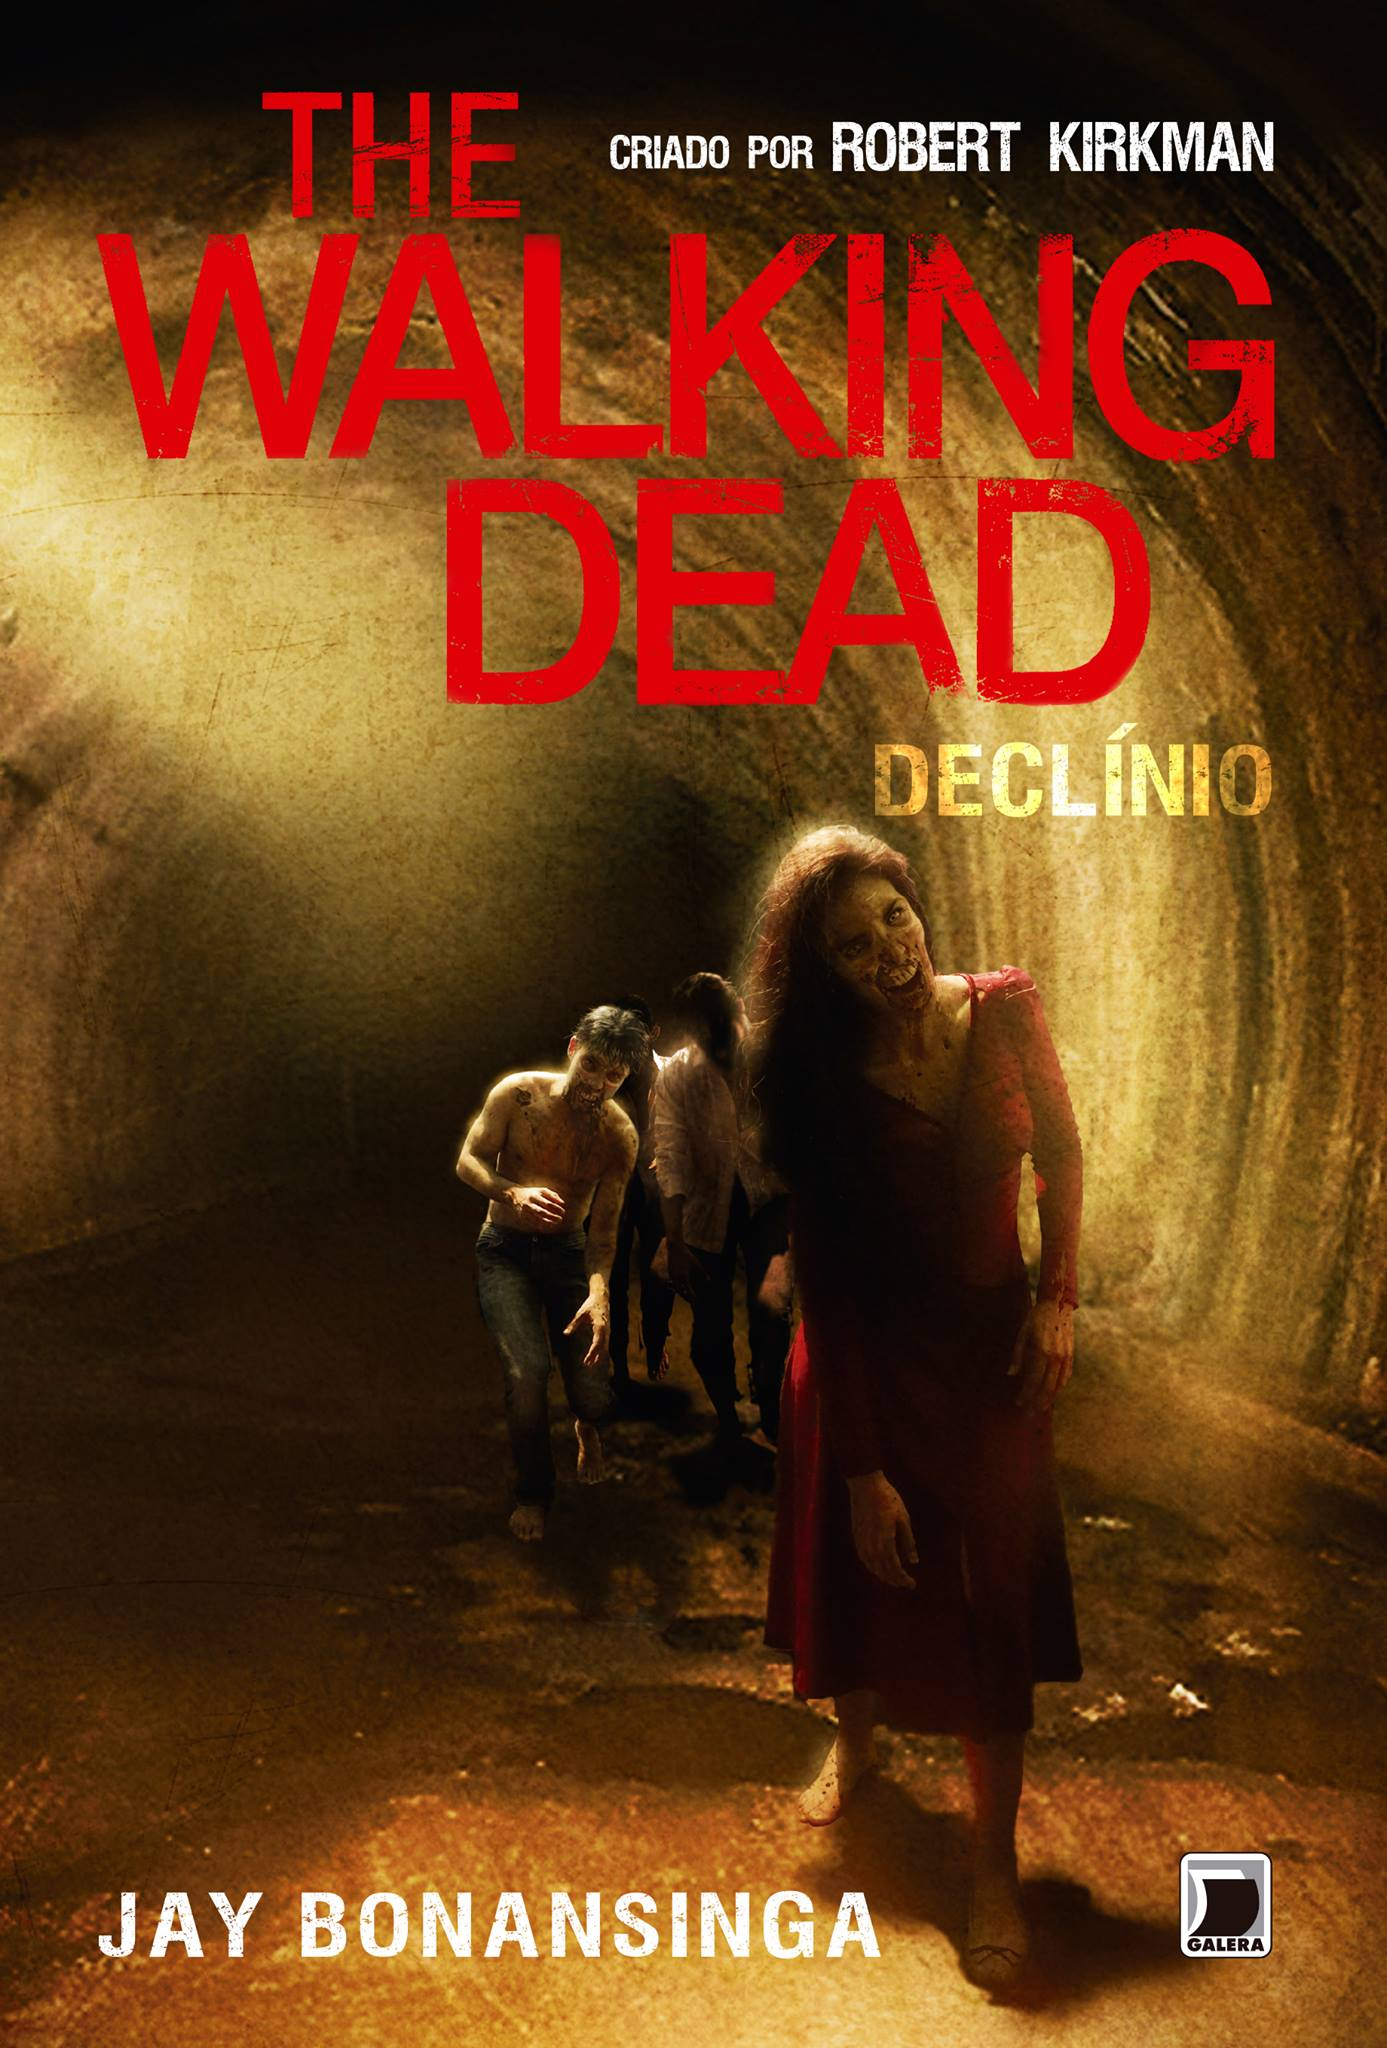 the-walking-dead-declinio-capa-final